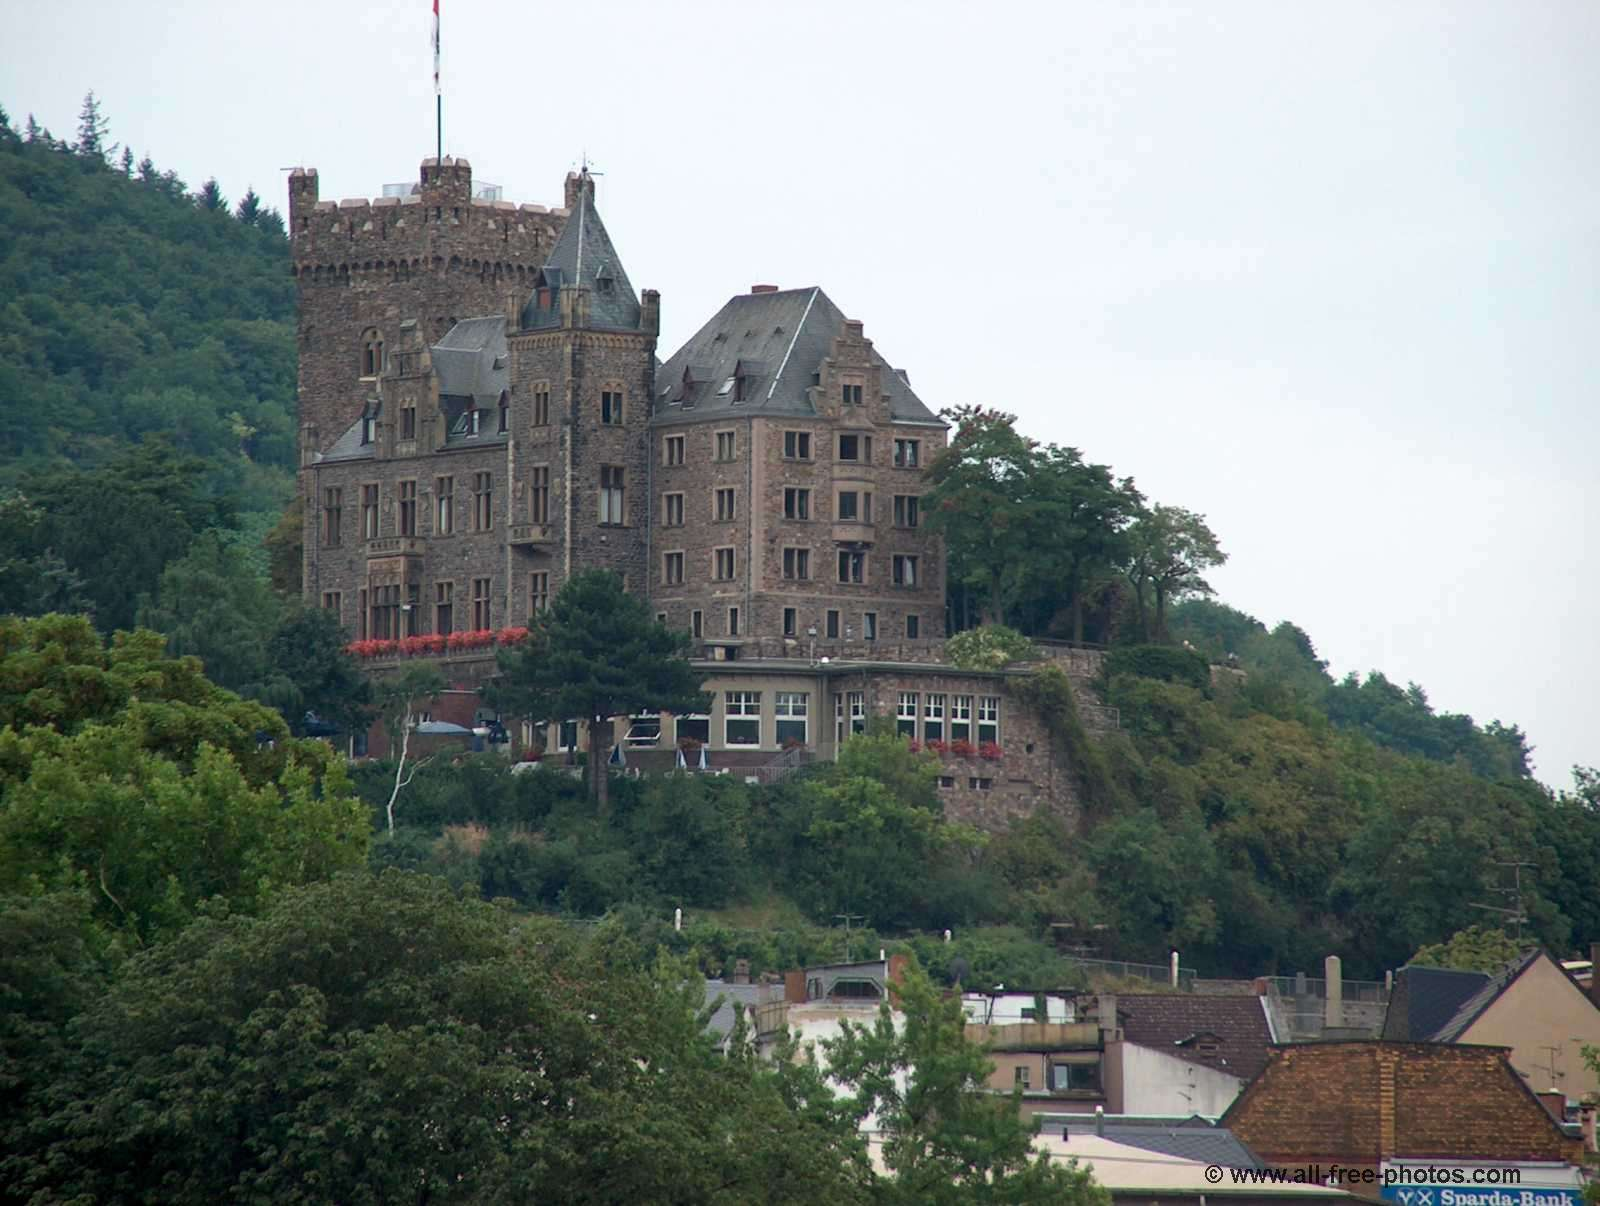 Klopp castle - Bingen - Rhine valley - Germany